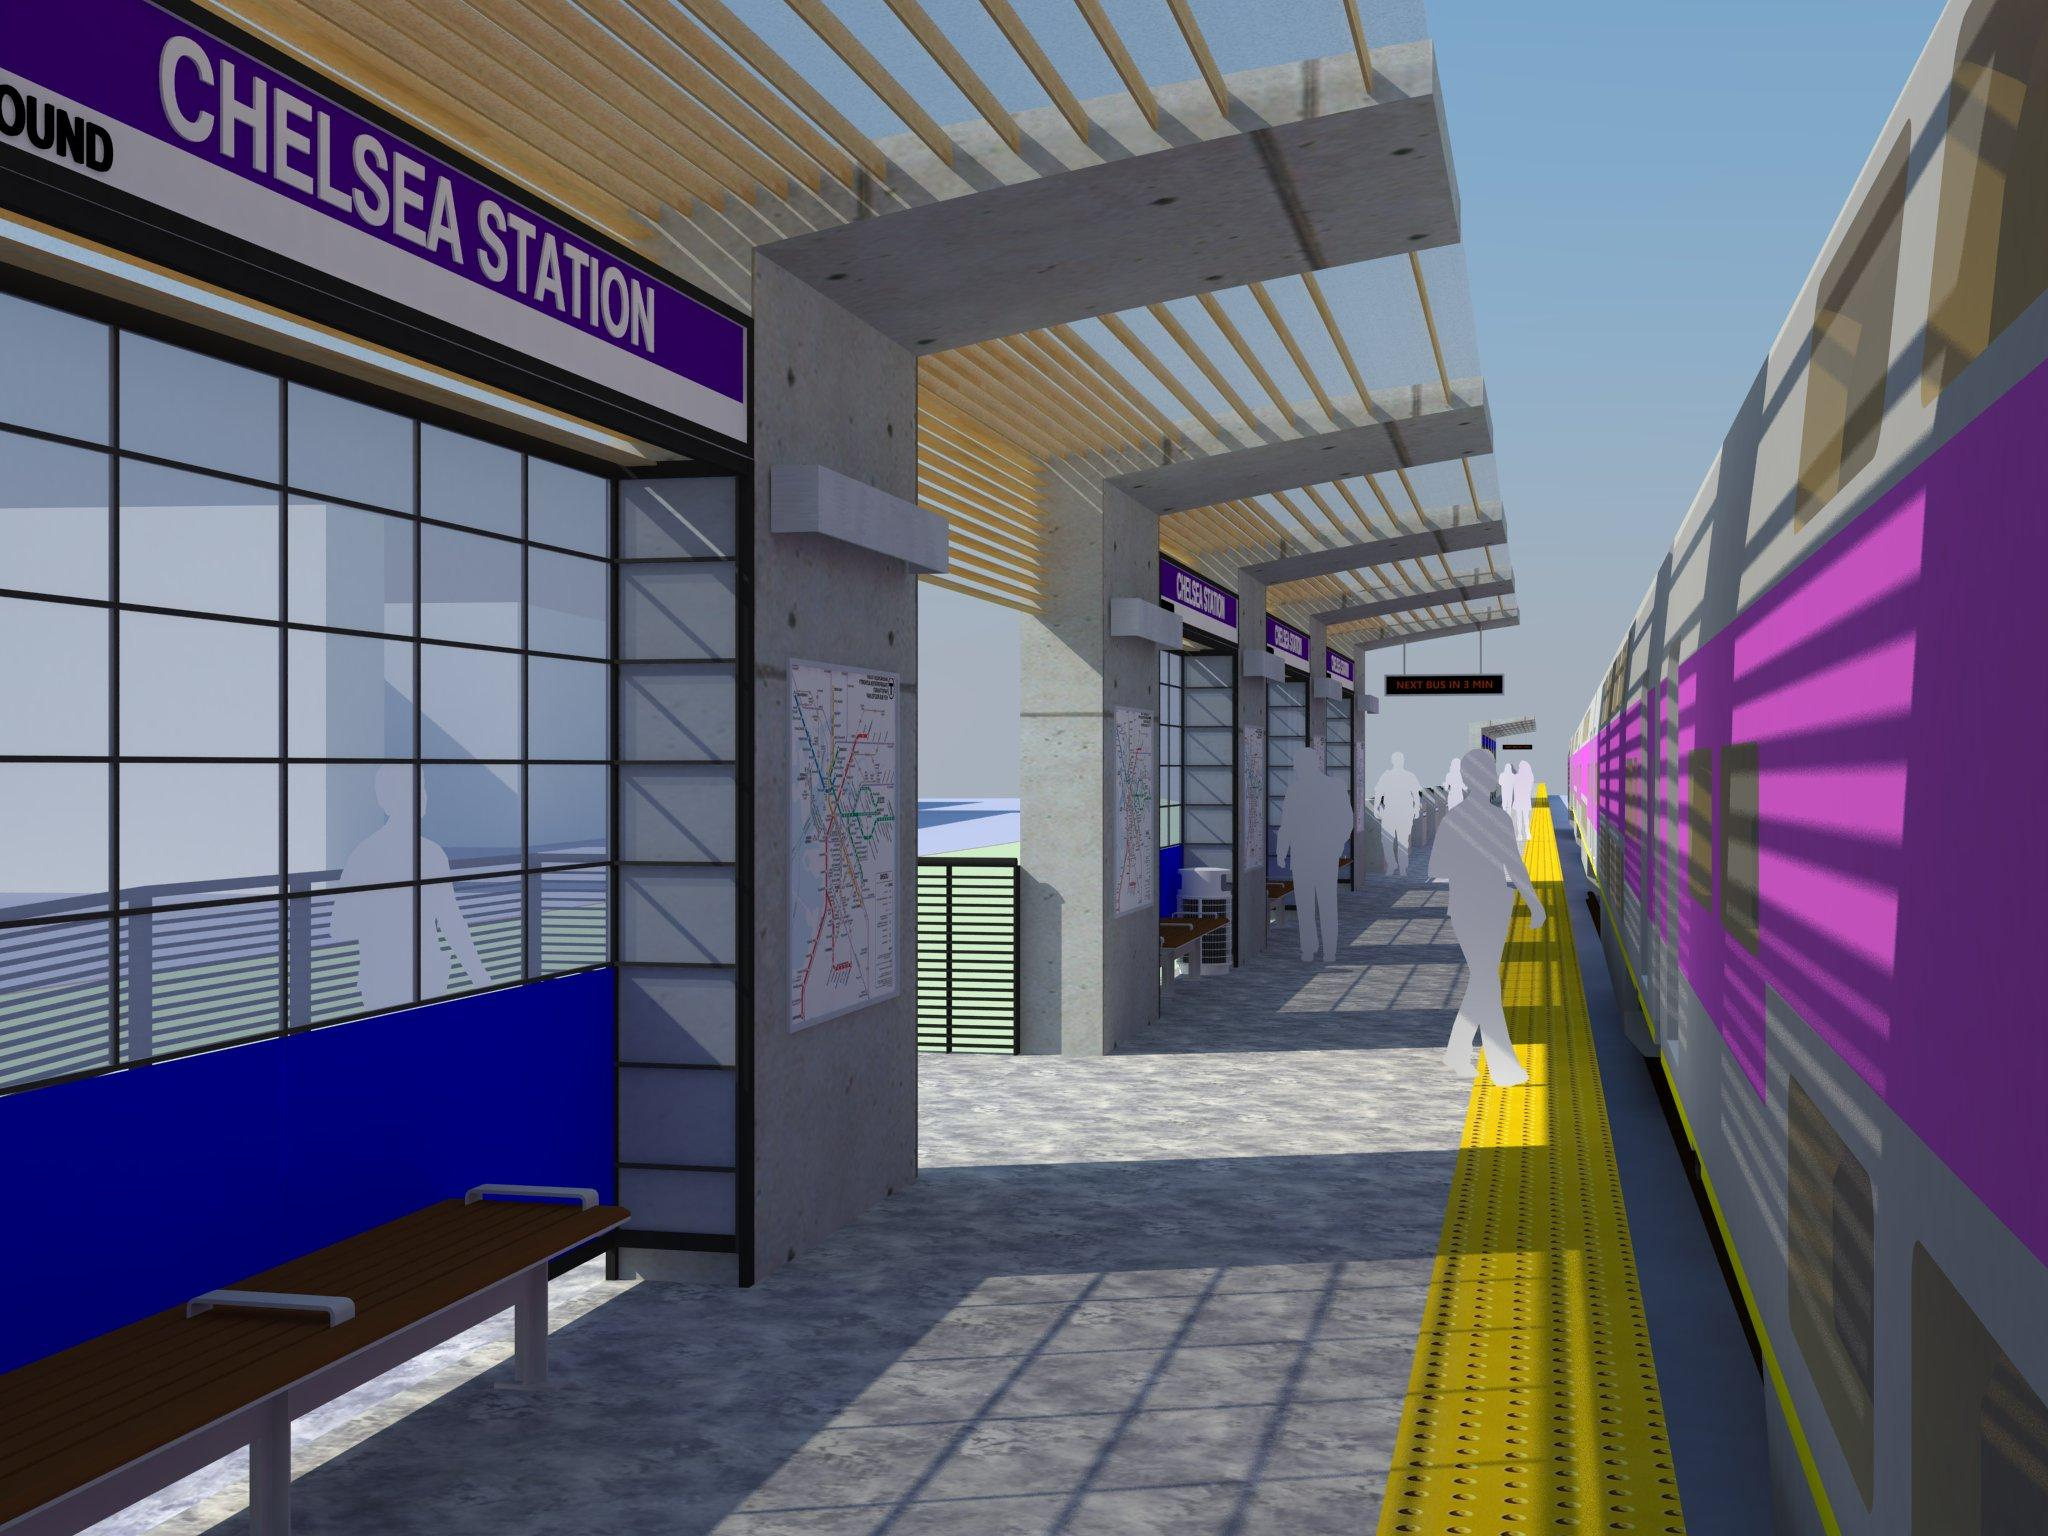 A rendering of the new Chelsea Commuter Rail Station, with a closeup view of the platform, canopy, and train pulled up.